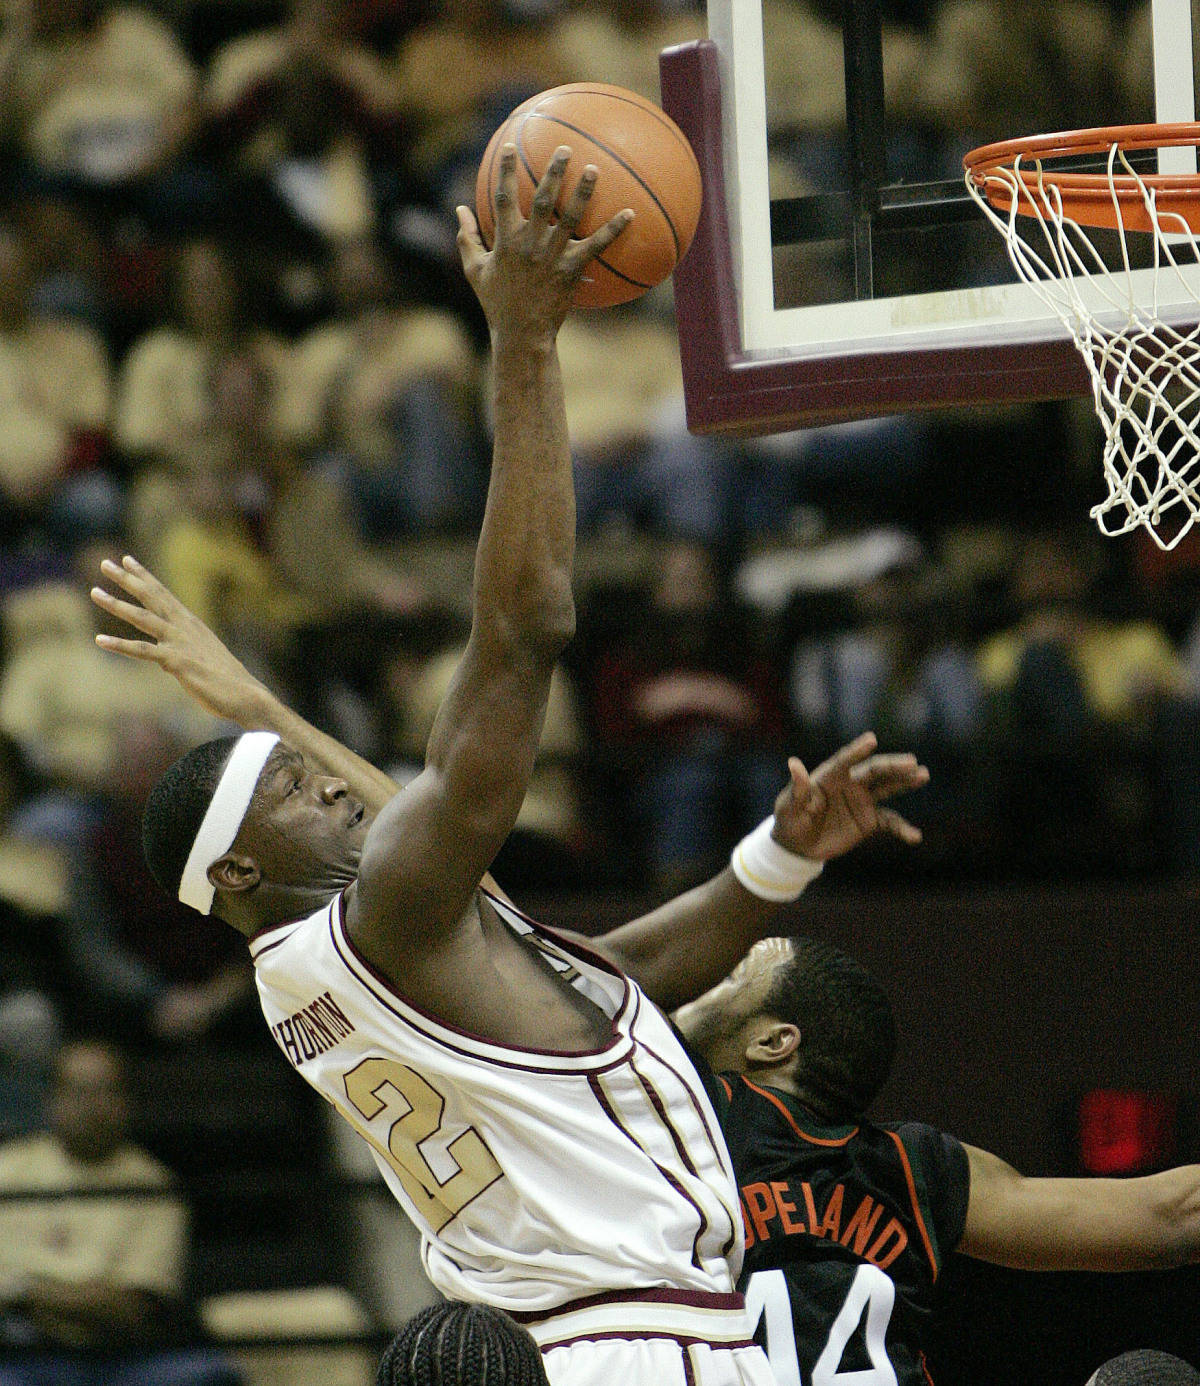 Florida State's Al Thornton, left, scores over Miami's Keaton Copeland during the second half of a college basketball game, Saturday, Jan. 20, 2007, in Tallahassee, Fla. Florida State won, 86-67. (AP Photo/Phil Coale)